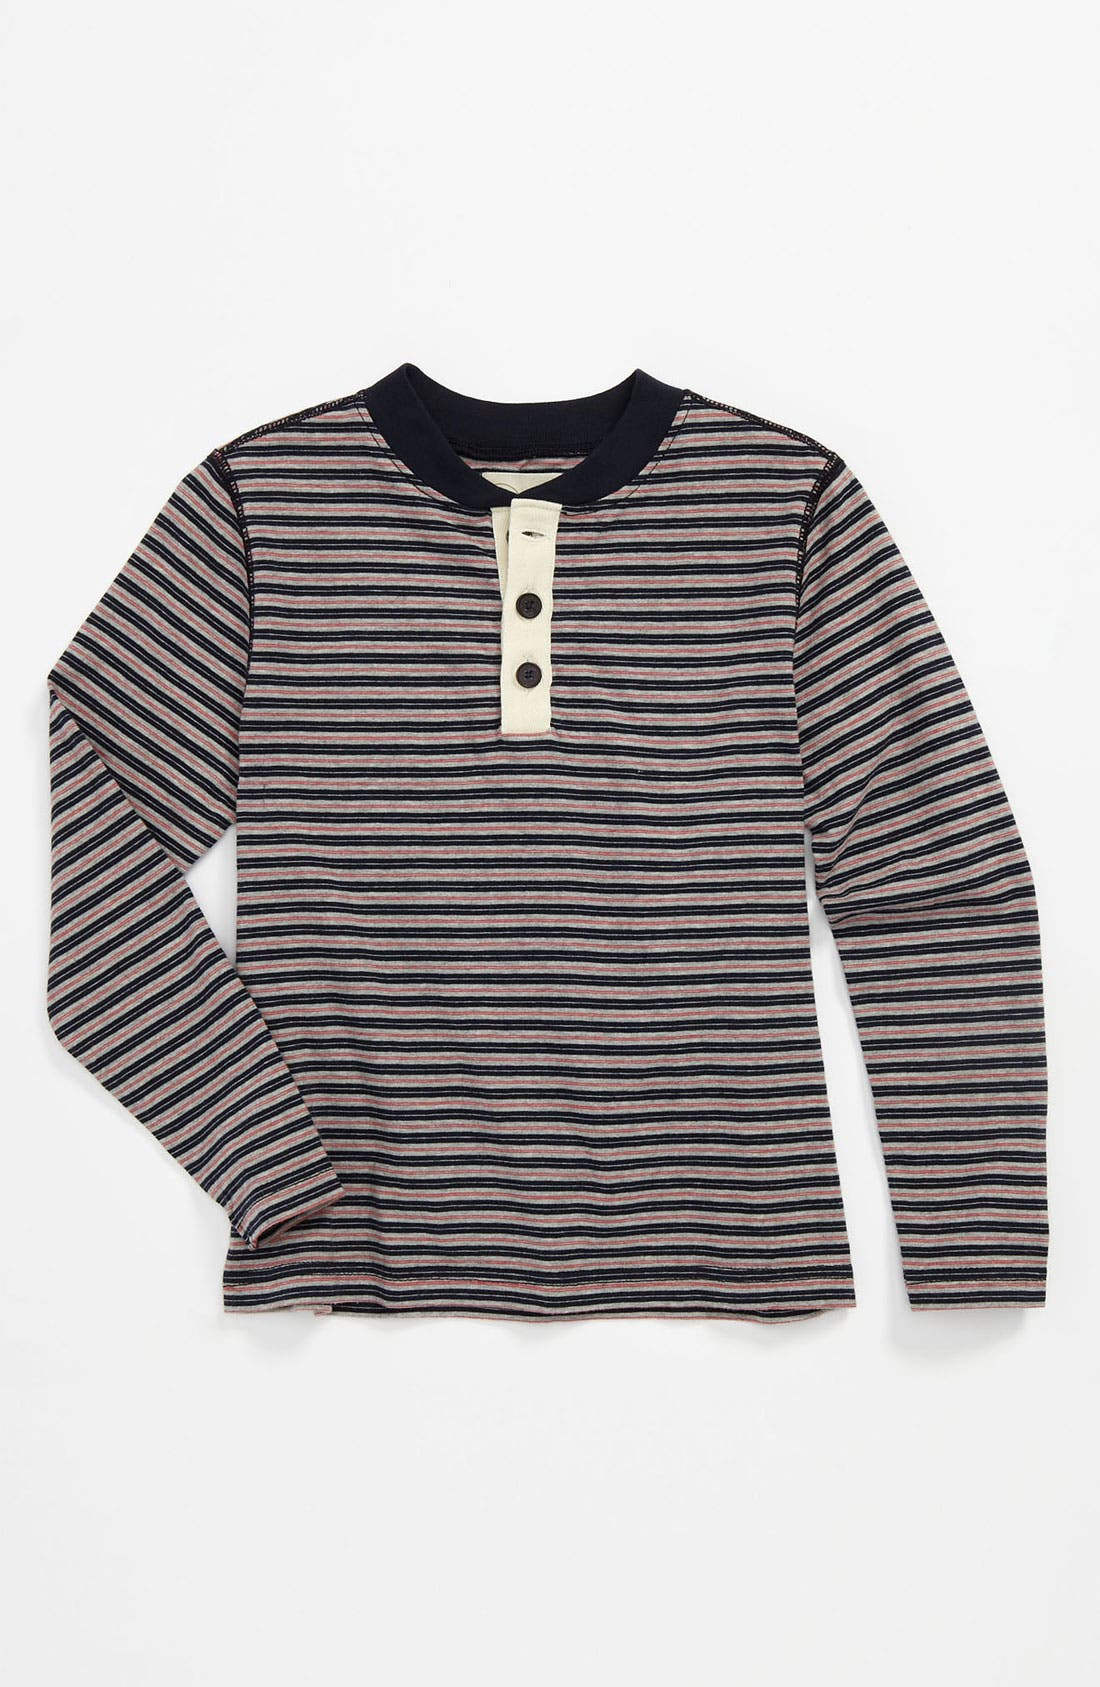 Alternate Image 1 Selected - Peek 'Rawley' Stripe Henley (Little Boys & Big Boys)